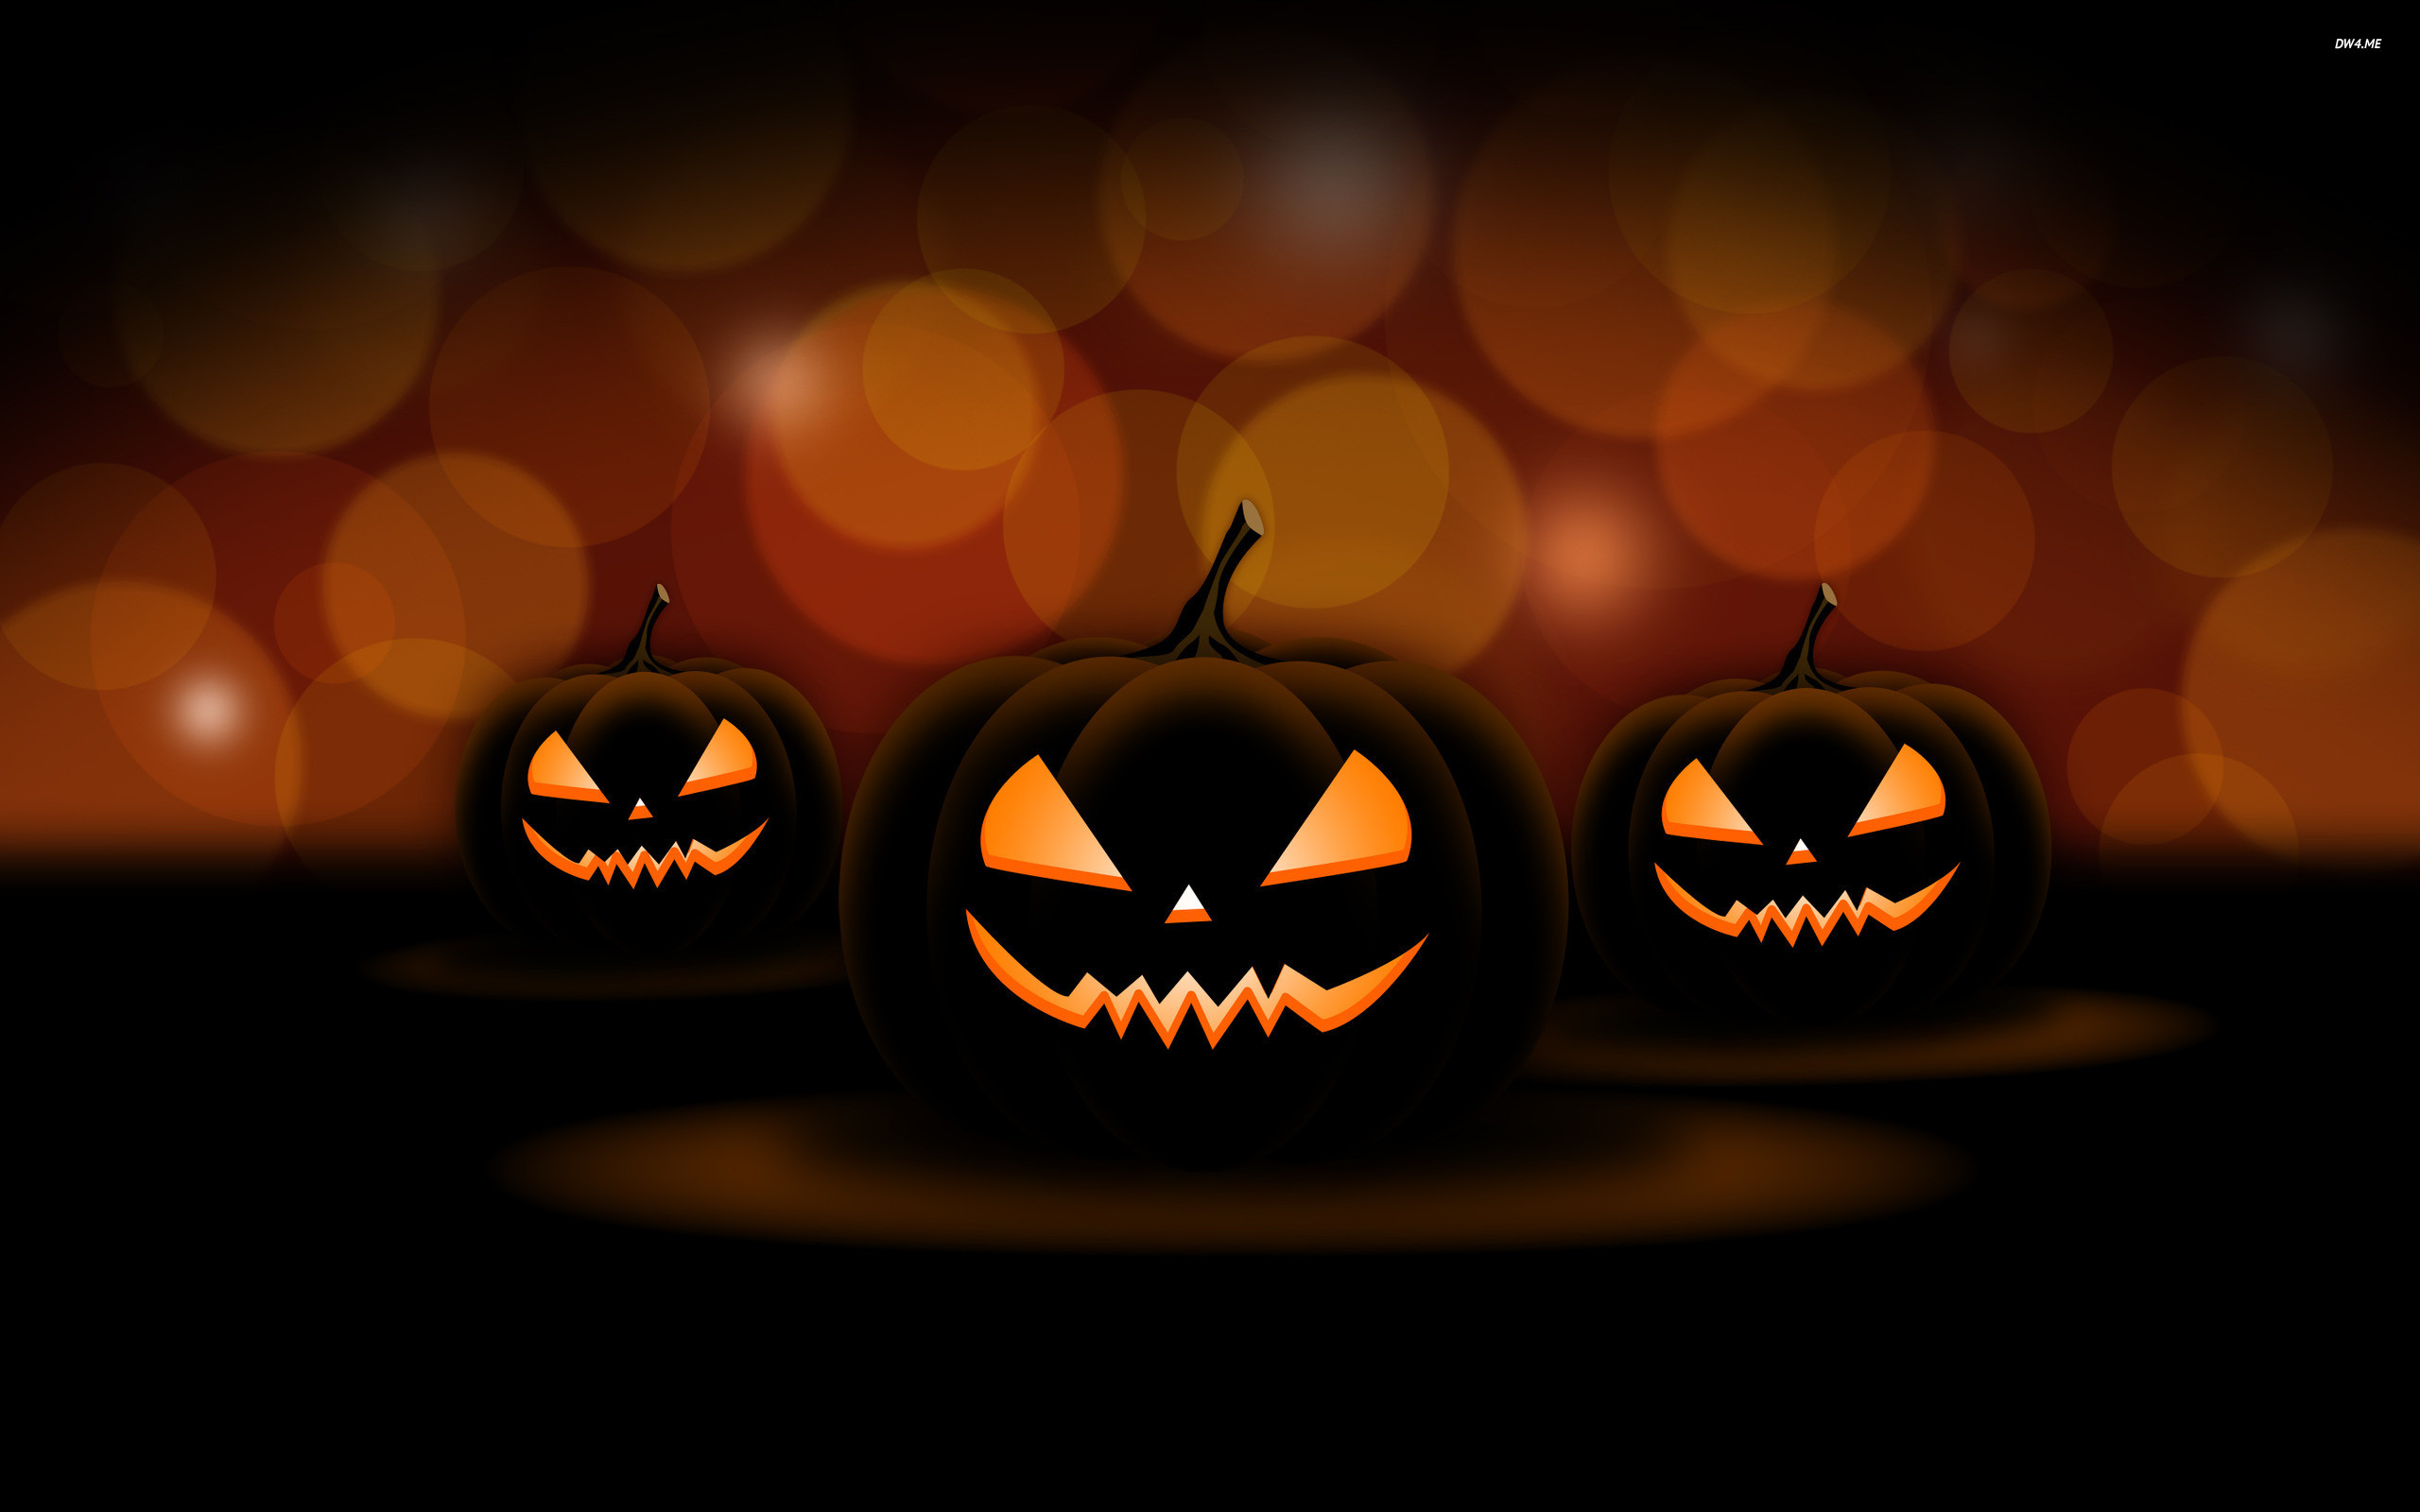 Res: 2560x1600, Happy Halloween s wallpaper high quality resolution